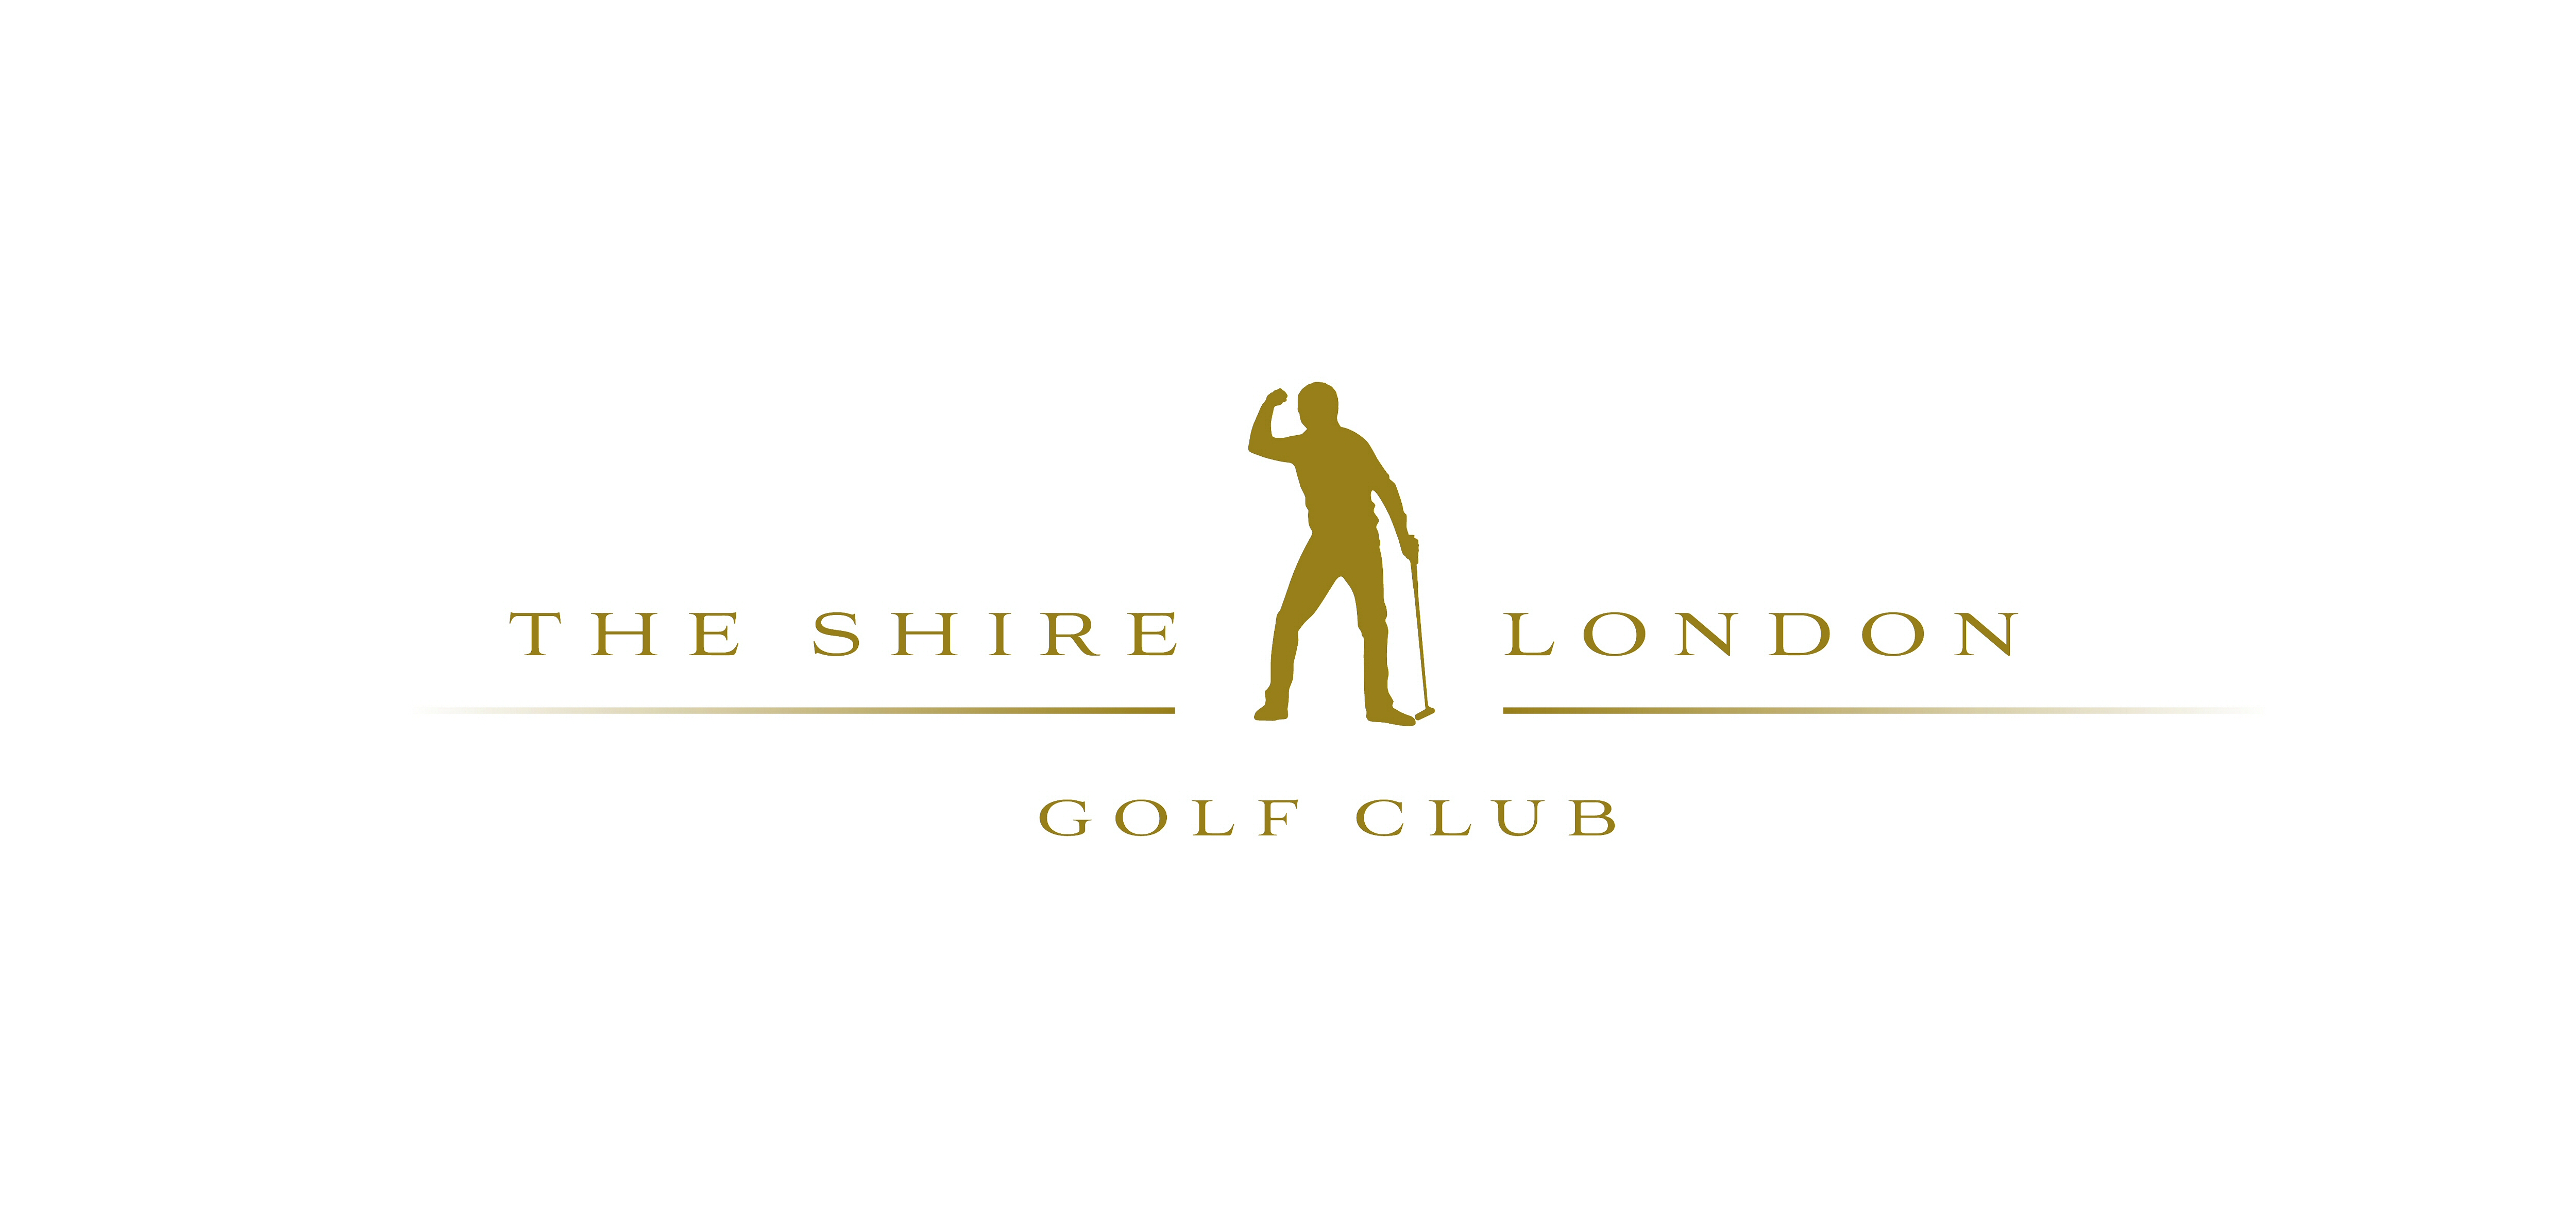 The Shire London